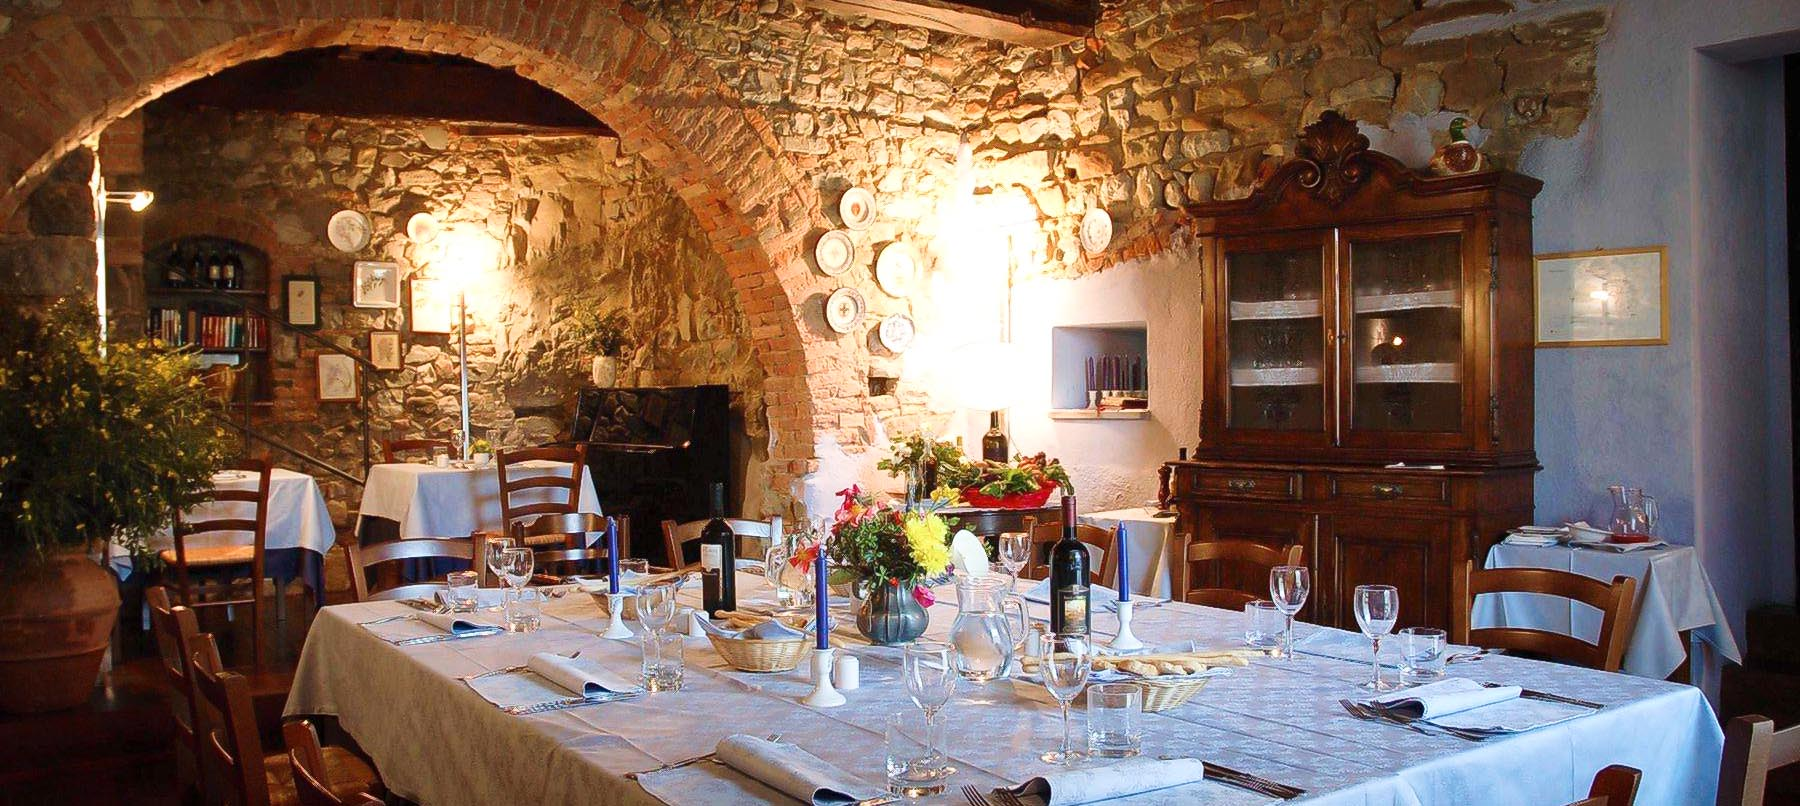 tuscany chianti restaurants - best restaurants in Chianti Siena Tuscany